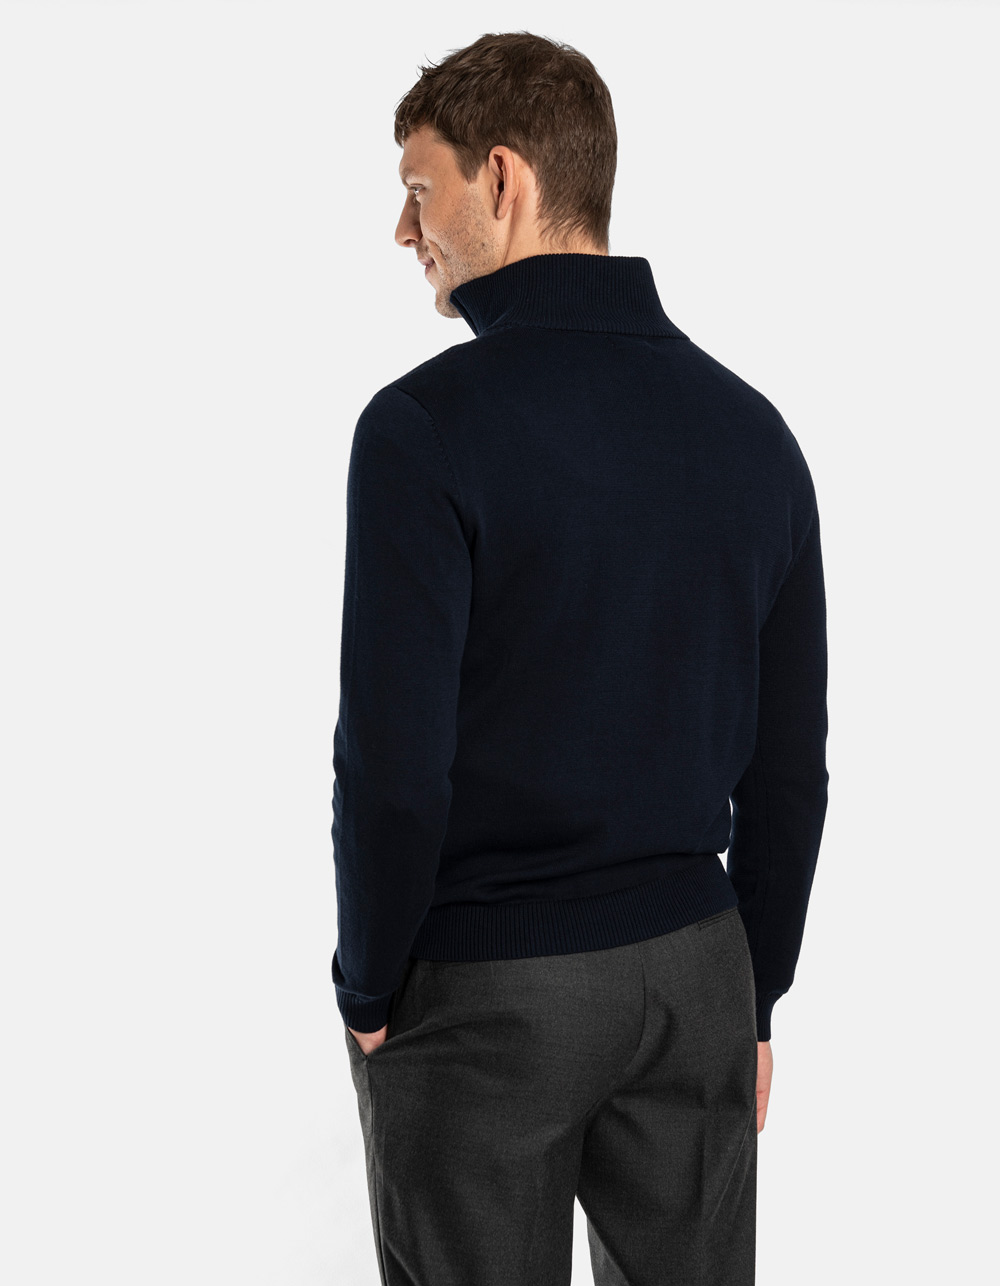 Dark Navy neck sweater with zip - Backside